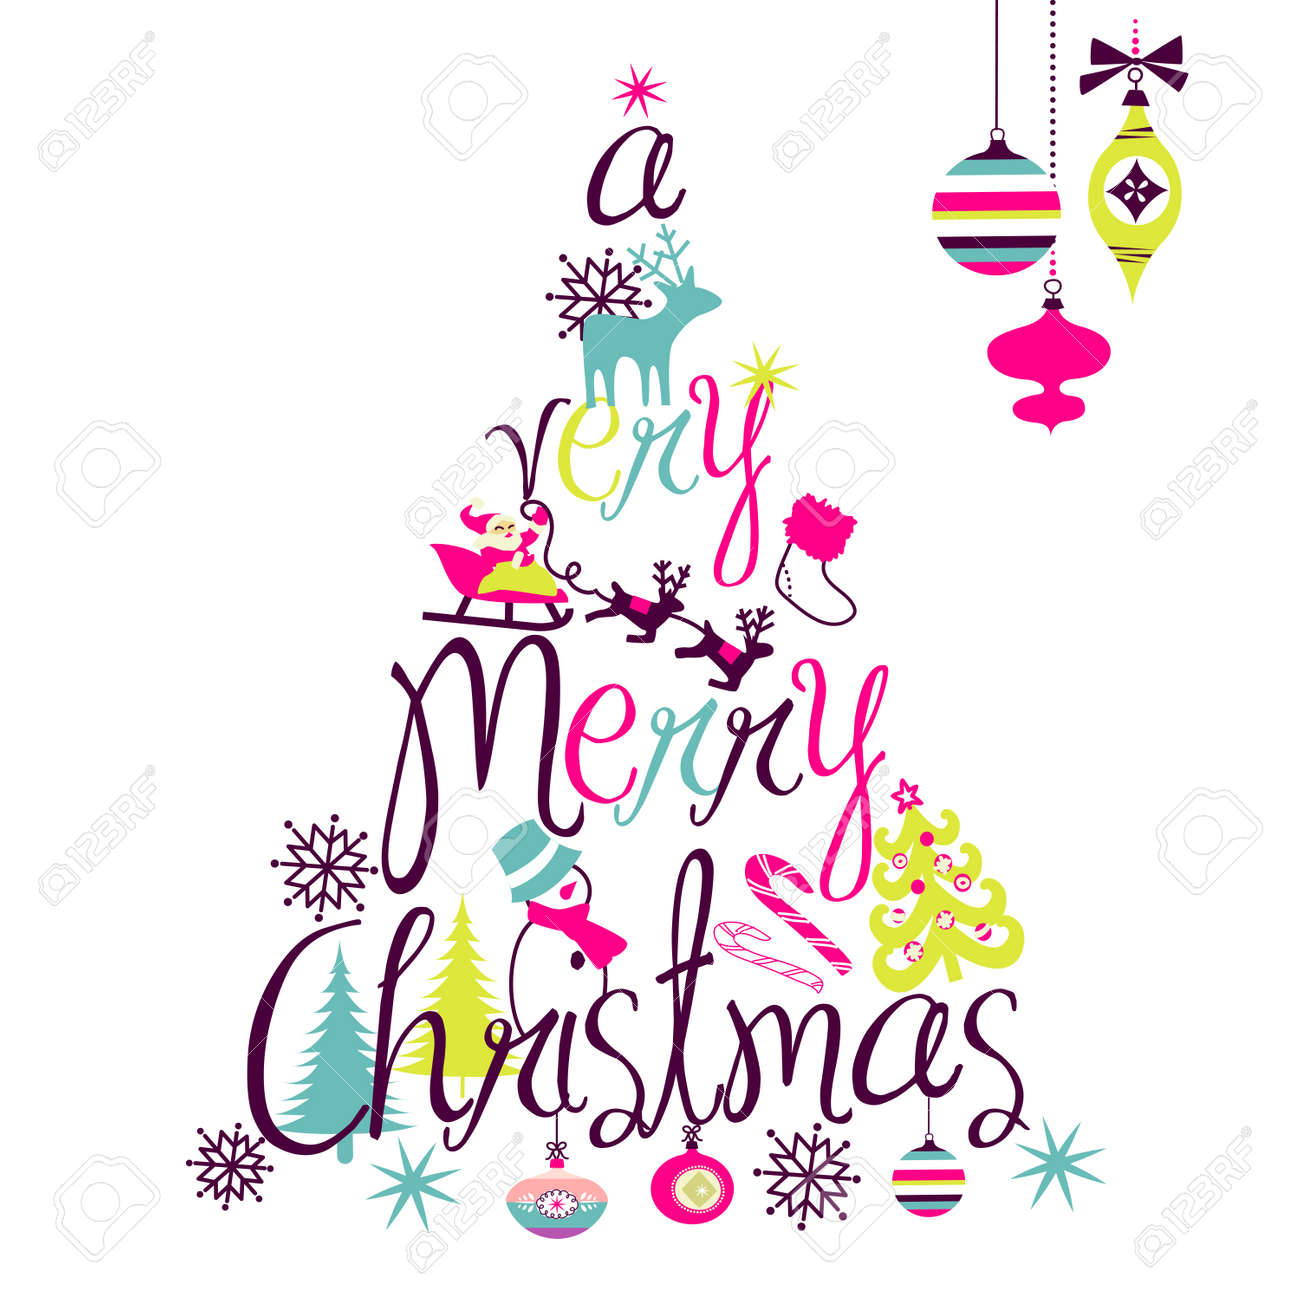 A Very Merry Christmas Tree Design Royalty Free Cliparts, Vectors ...